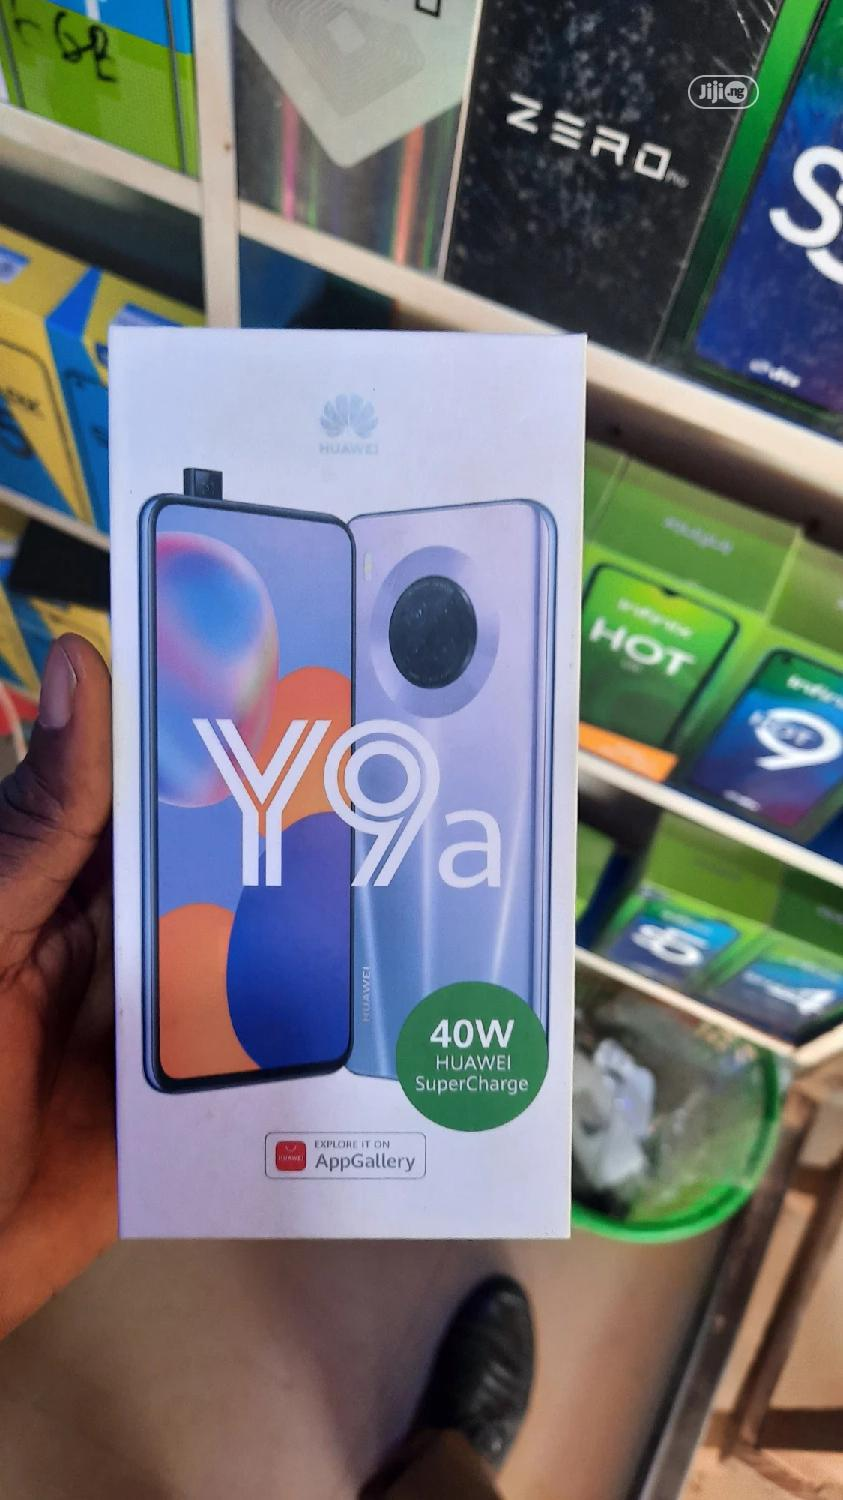 Archive: New Huawei Y9a 128GB